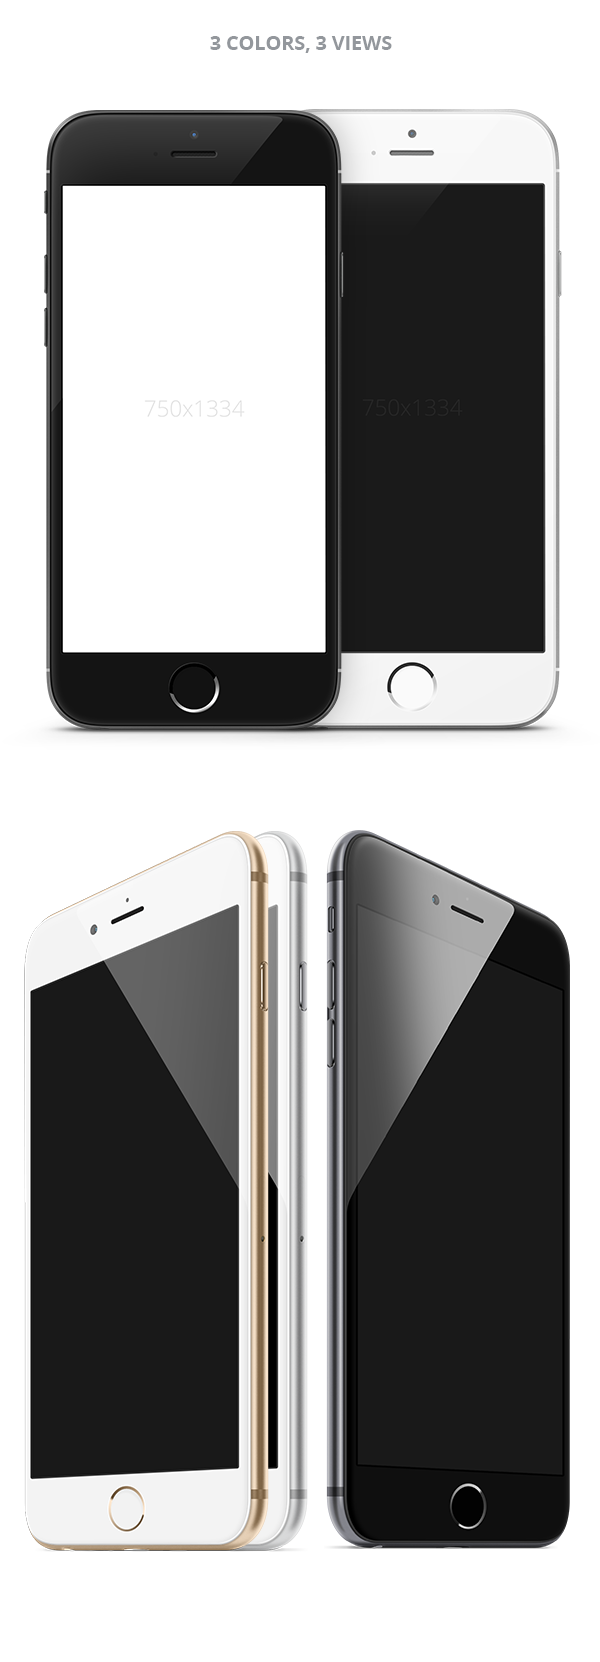 ios device free Mockup psd template apple photoshop iphone side view